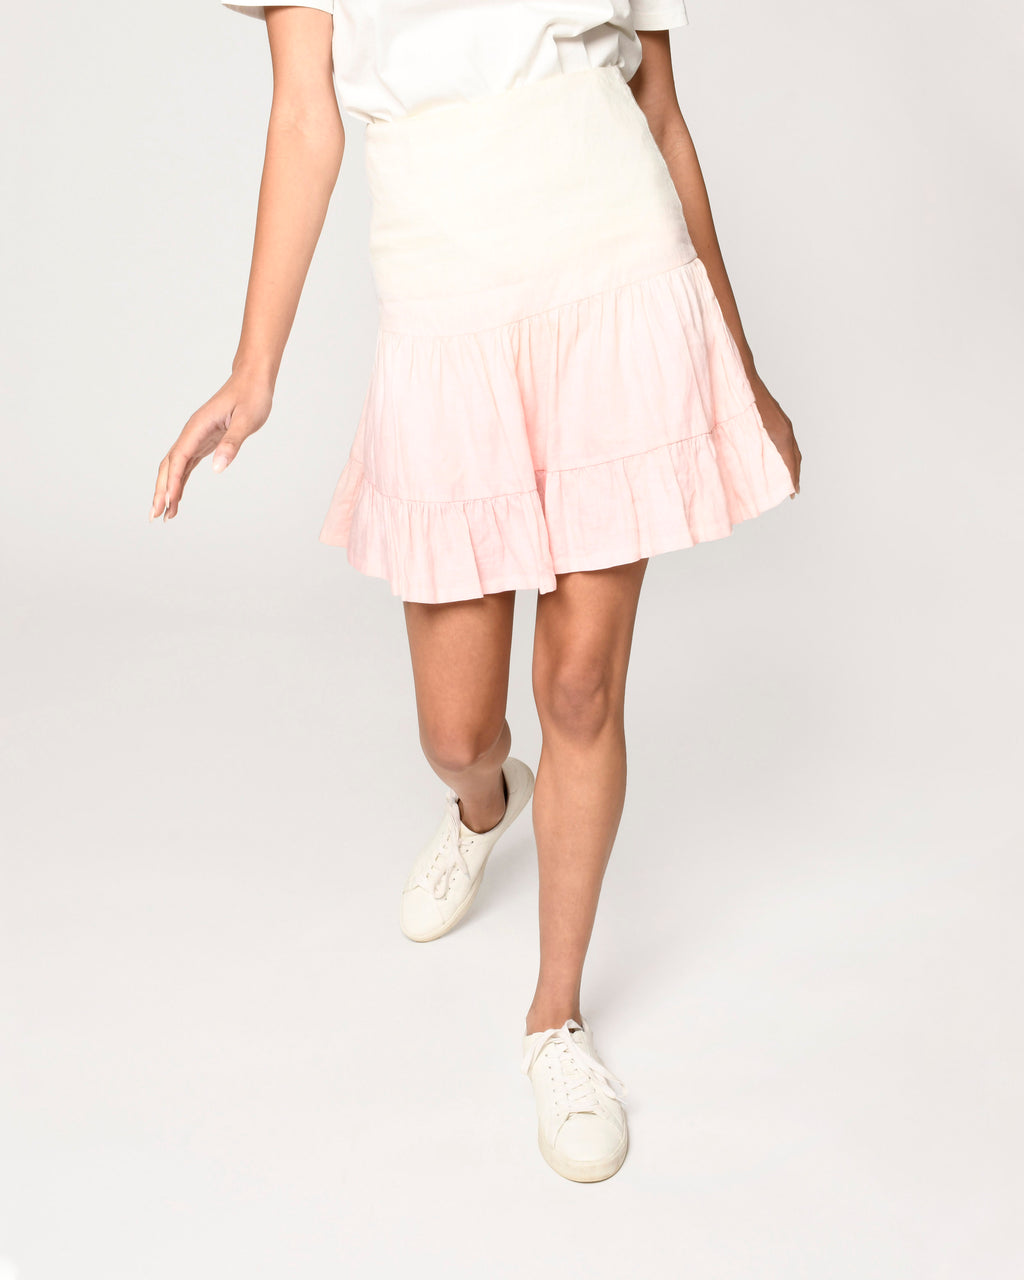 CS19058 - DIP DYE LINEN MINI SKIRT - bottoms - skirts - This flirty mini skirt is dip dyed in colorful pink and yellow ombr� and is designed in lightweight linen. This hand dyed piece features a ruffle hem and a zip closure. Add 1 line break Stylist Tip: Pair with our ivory linen crop top for a perfect spring set.